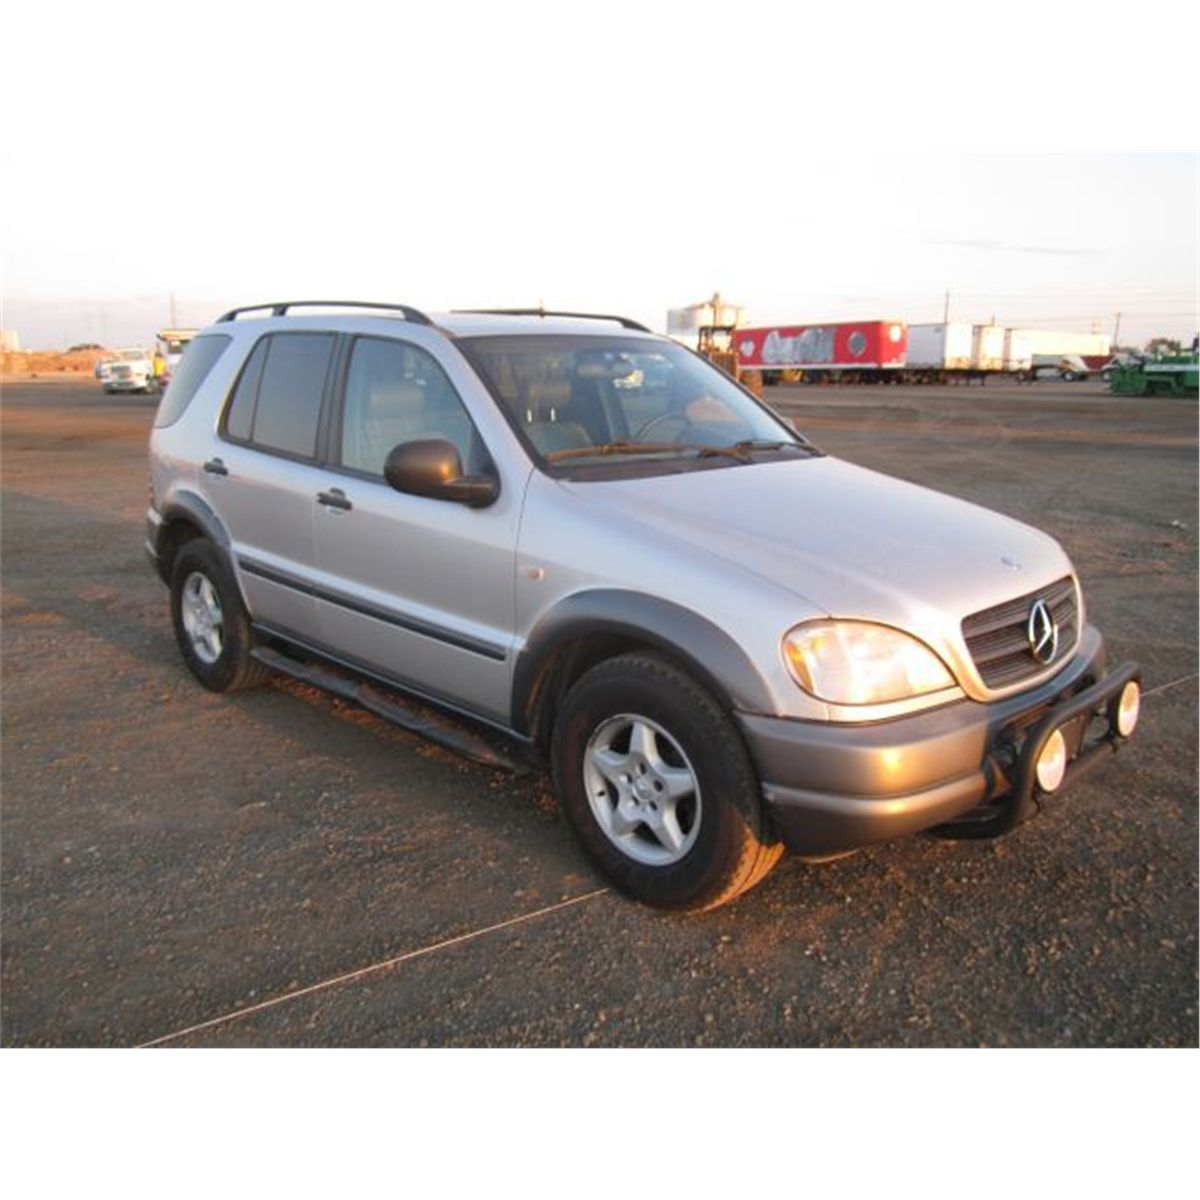 1999 Mercedes Benz Ml320 4 Door Suv